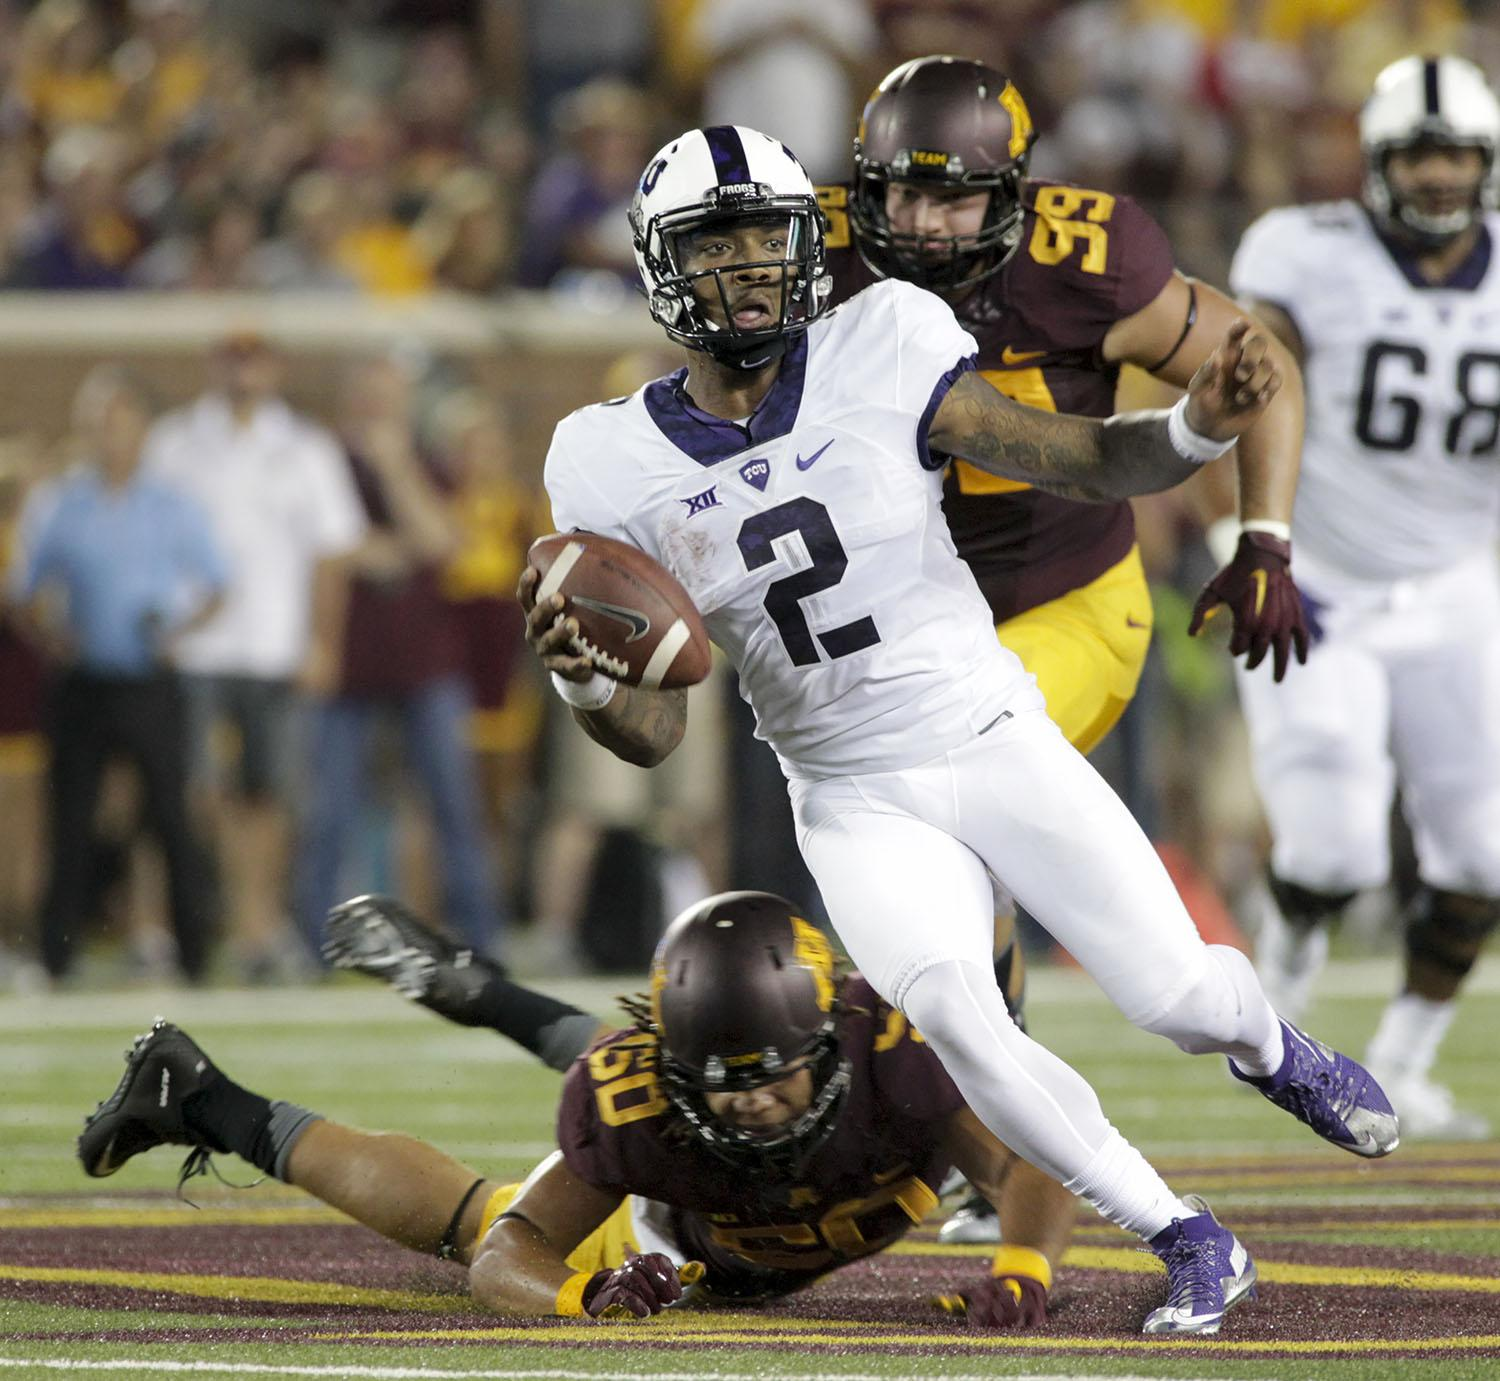 TCU quarterback Trevone Boykin (2) evades the tackle of Minnesota offensive lineman Matt Leidner (60) during the first half of an NCAA college football game Thursday, Sept. 3, 2015, in Minneapolis. AP Photo/Paul Battaglia)